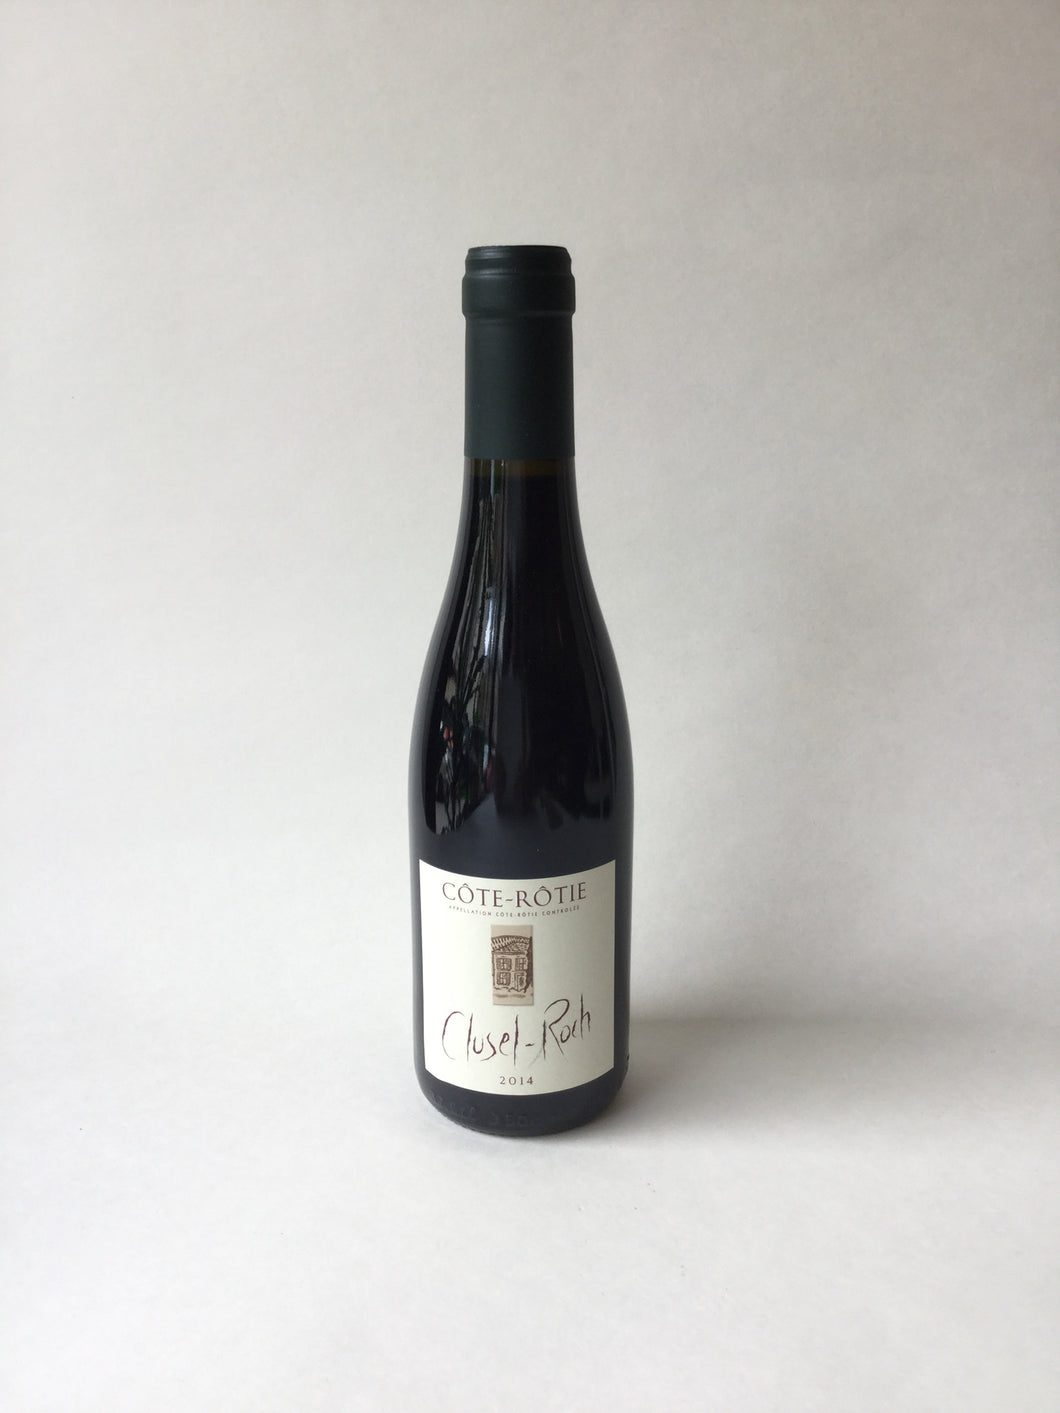 Domaine Clusel-Roch, Cote-Rotie 2014, 750ml - Frankly Wines